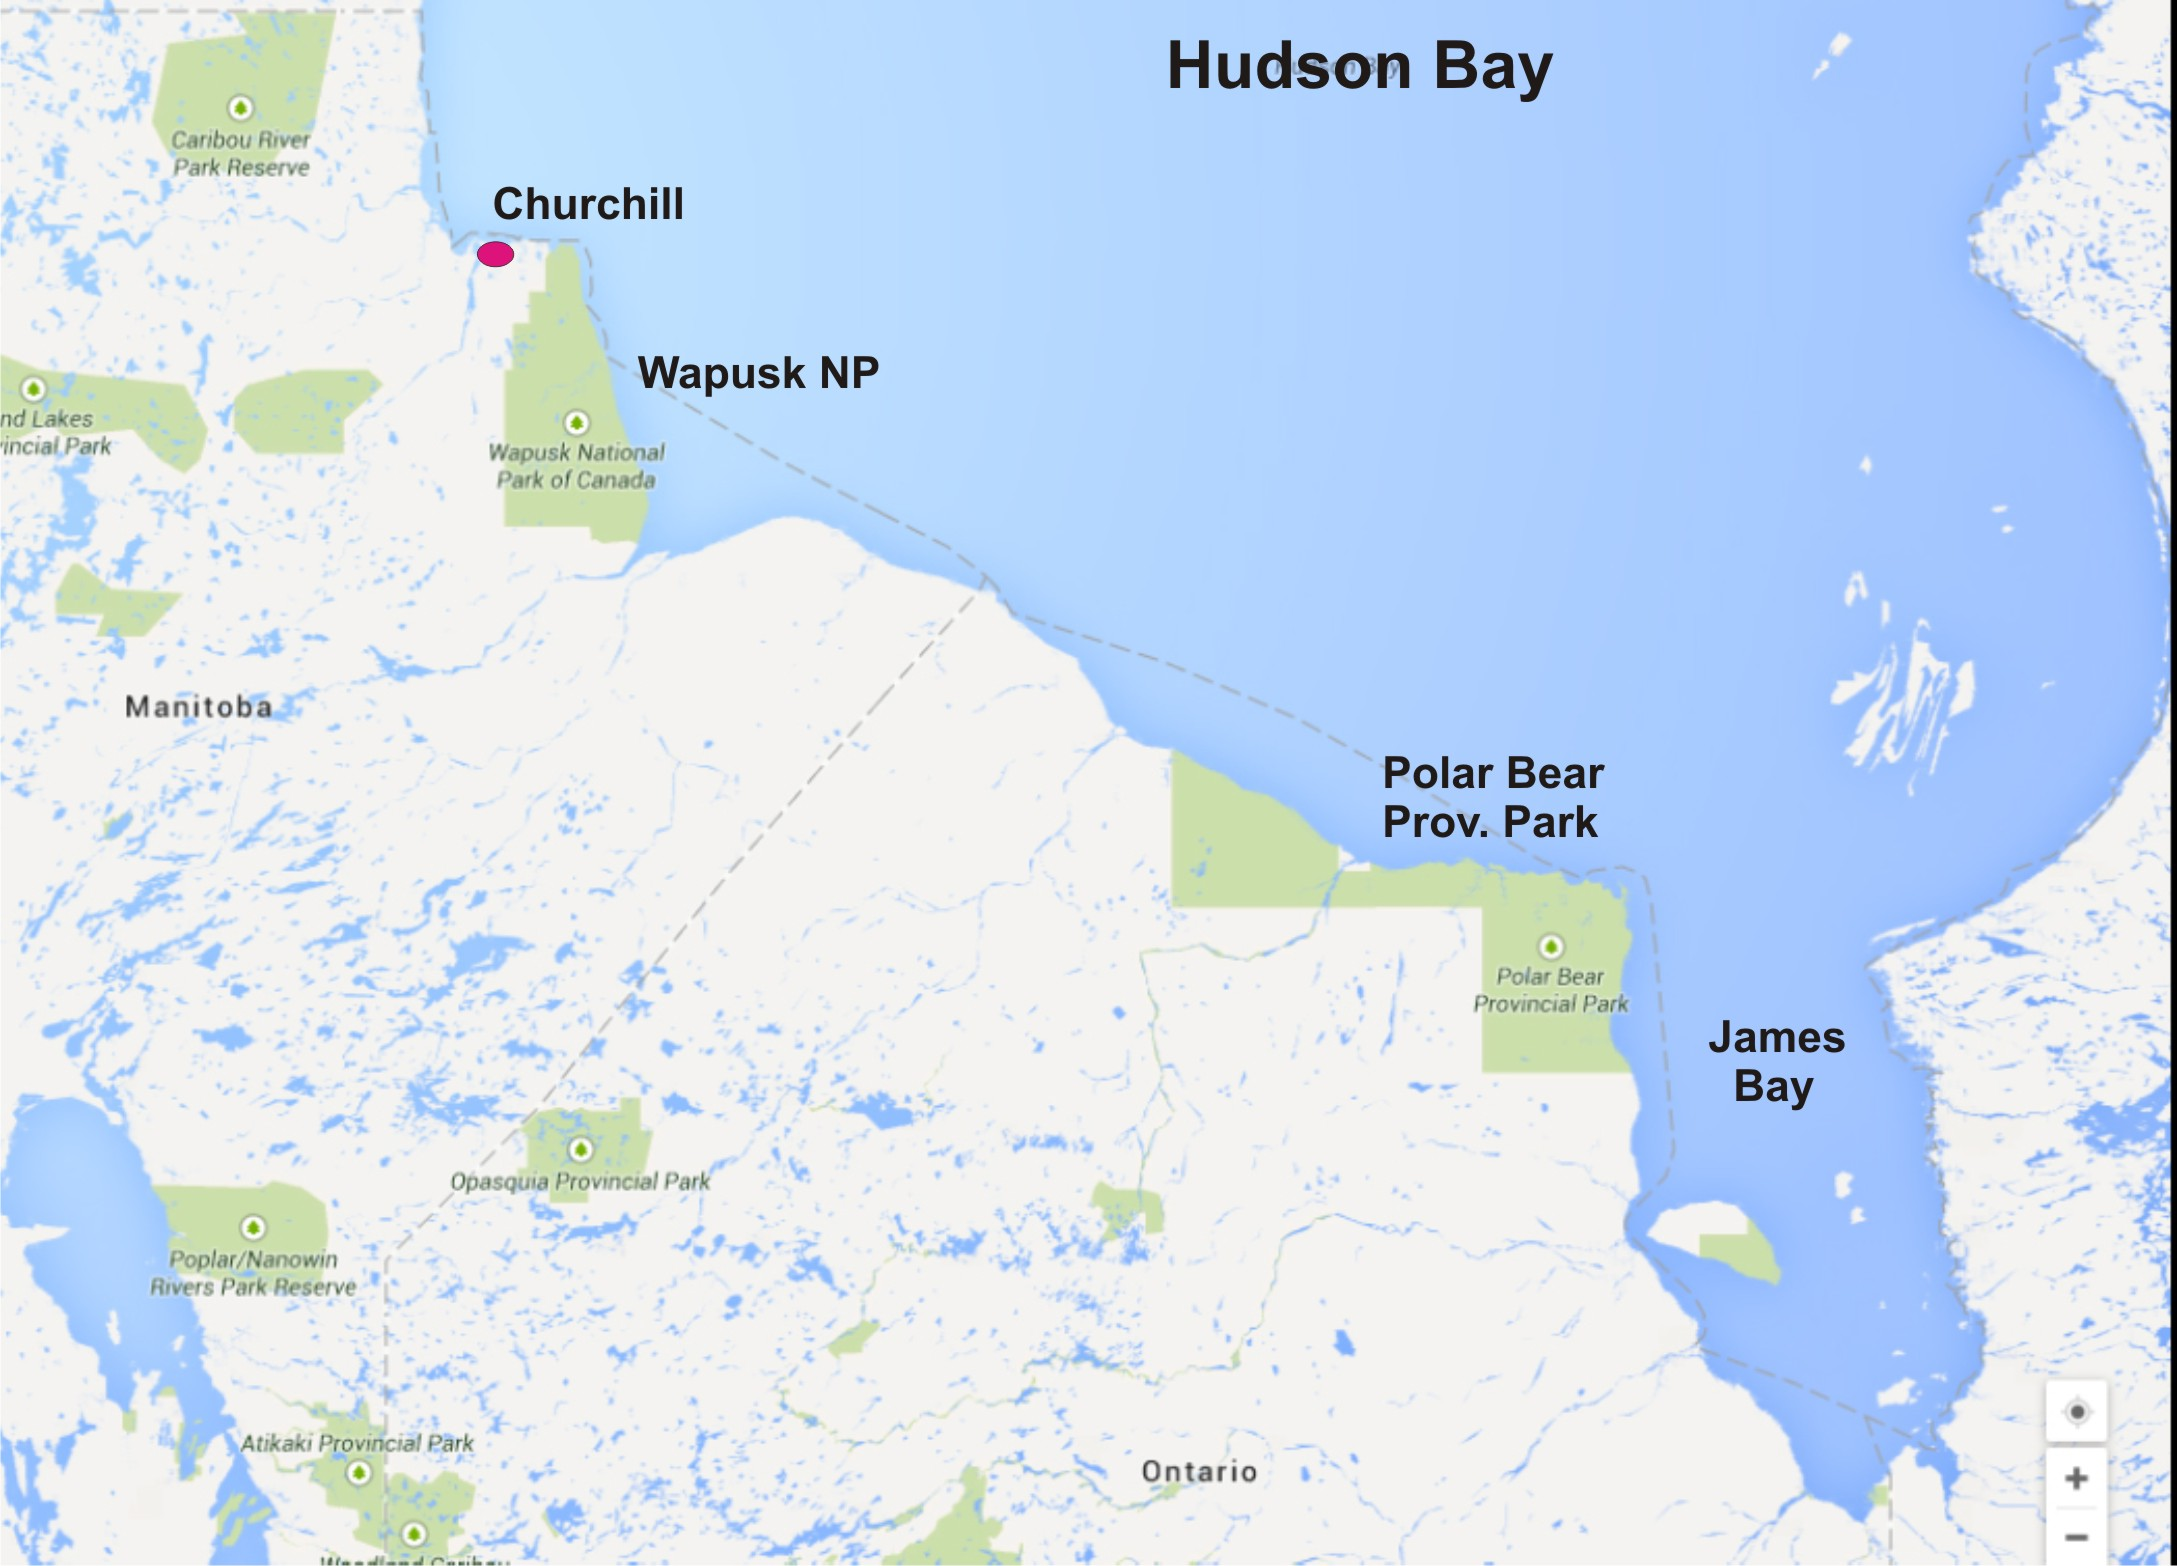 Polar bear counts for W Hudson Bay: 'core' area numbers are